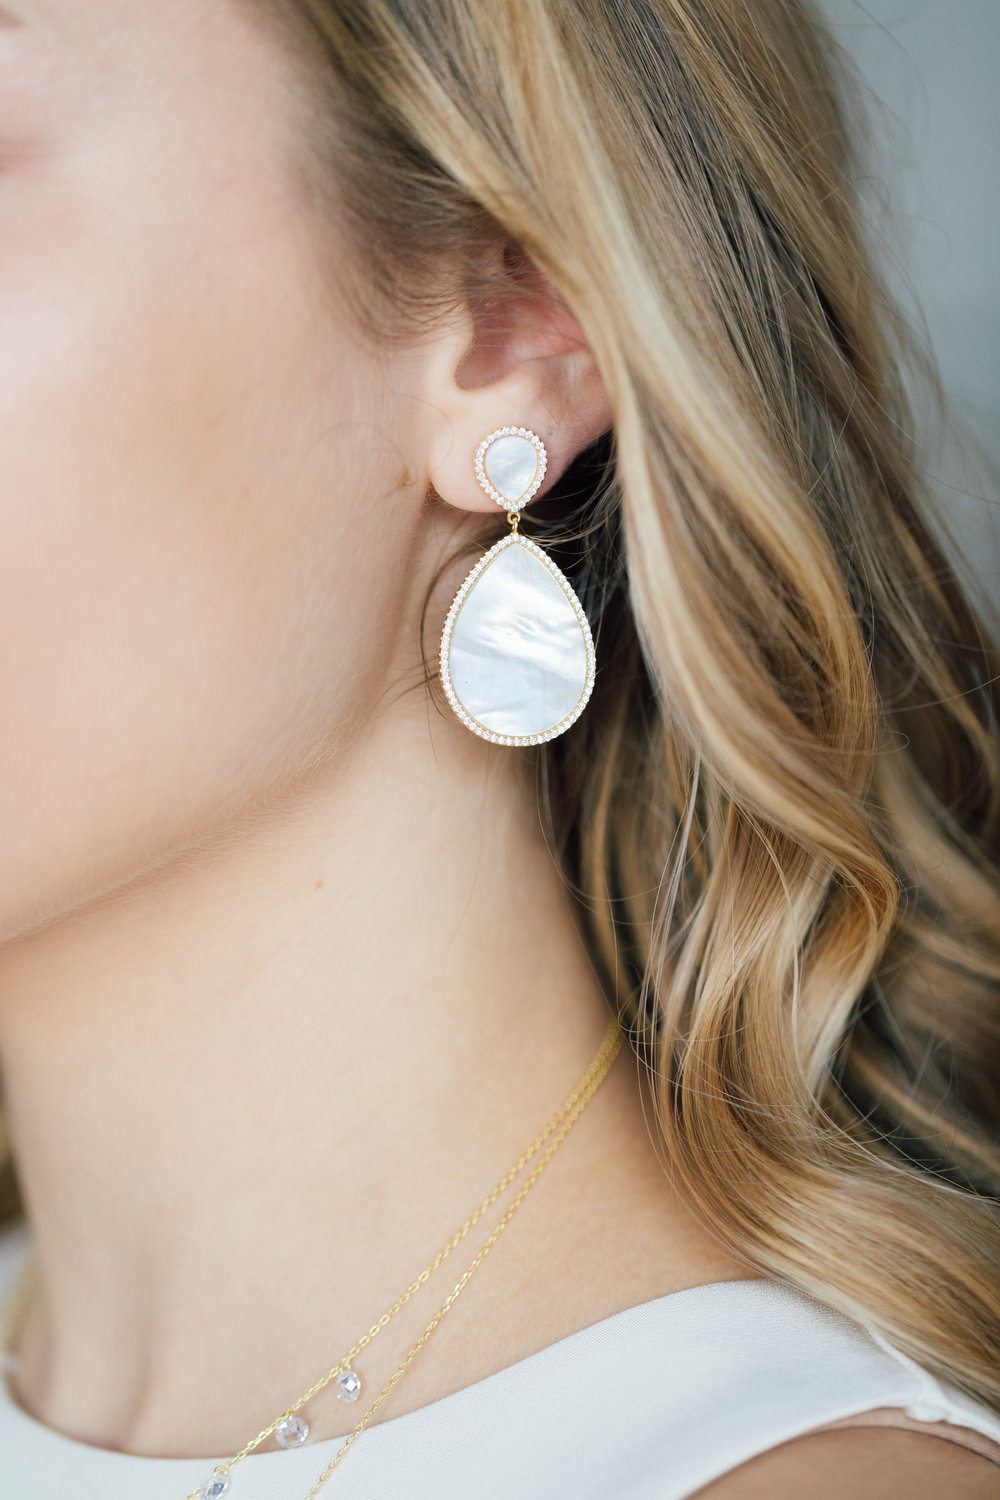 Dunay Joaillier's gorgeous Mother-of-Pearl earrings are perfect for any special occasion...